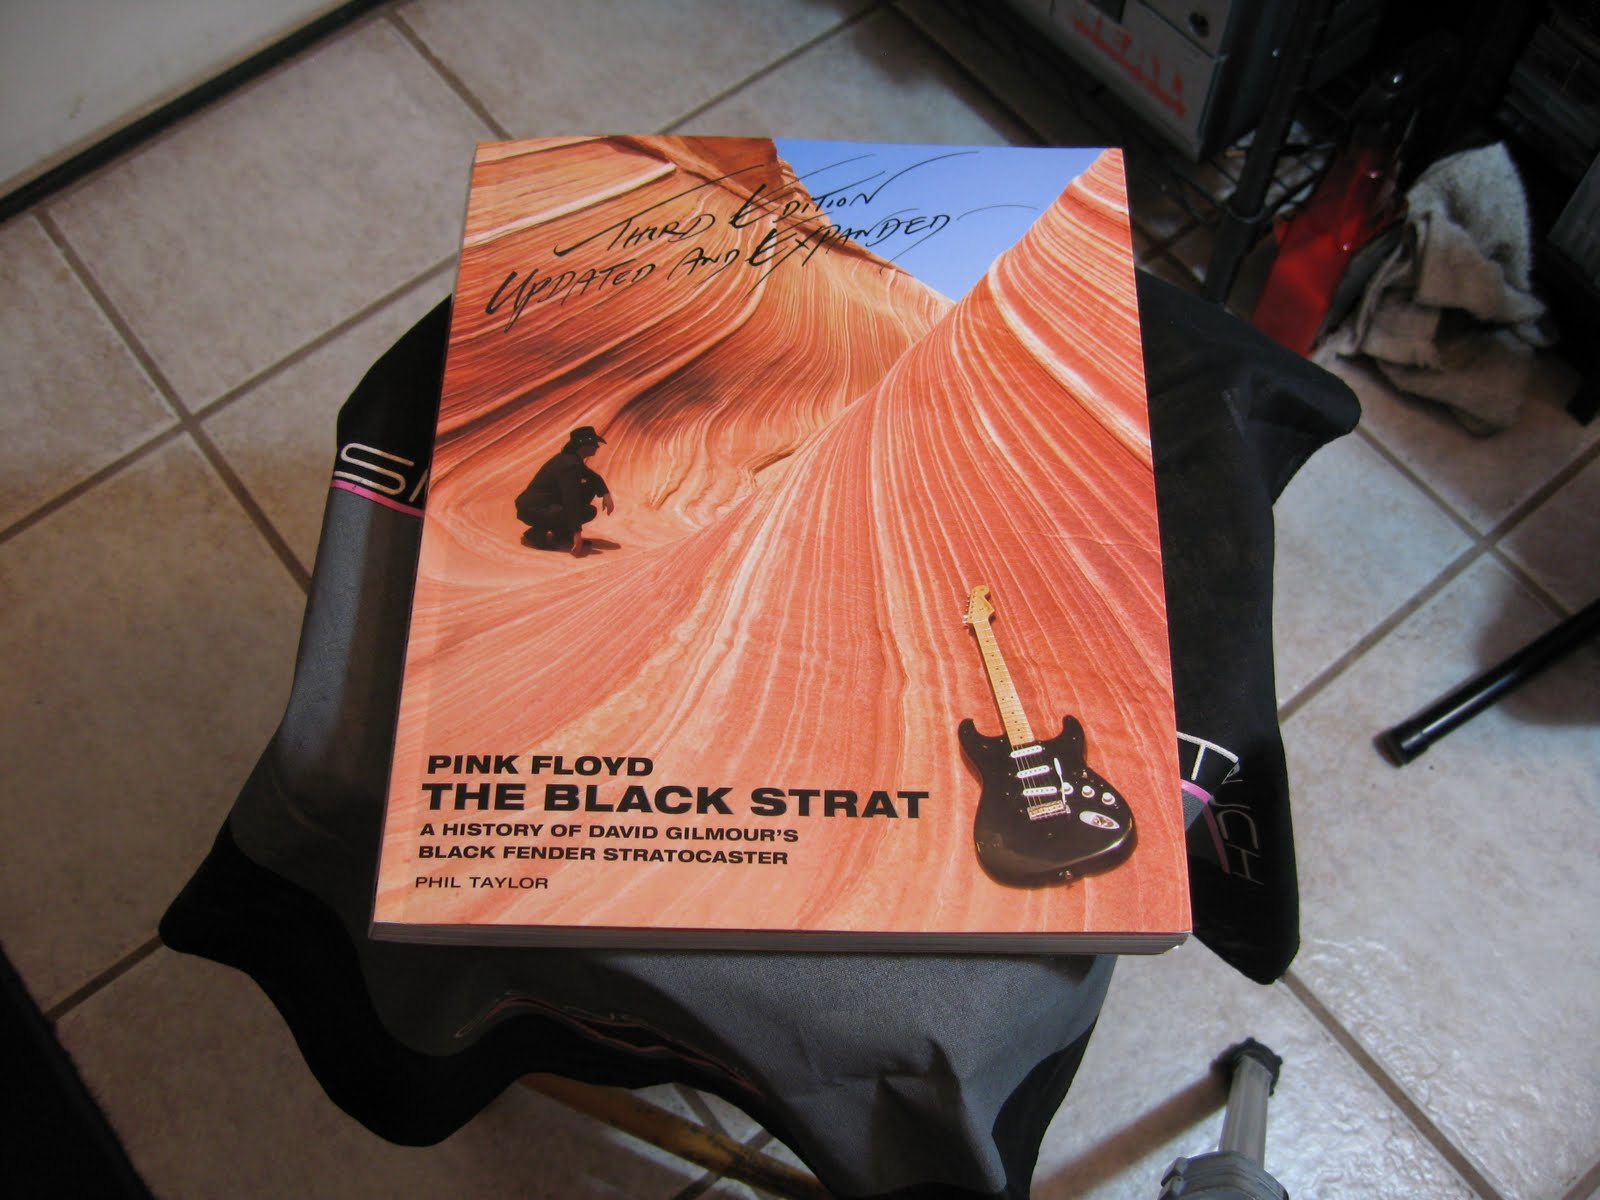 Loeuvre On Connait Lartisan 2011 The David Gilmour Black Strat Wiring Diagram Front Cover